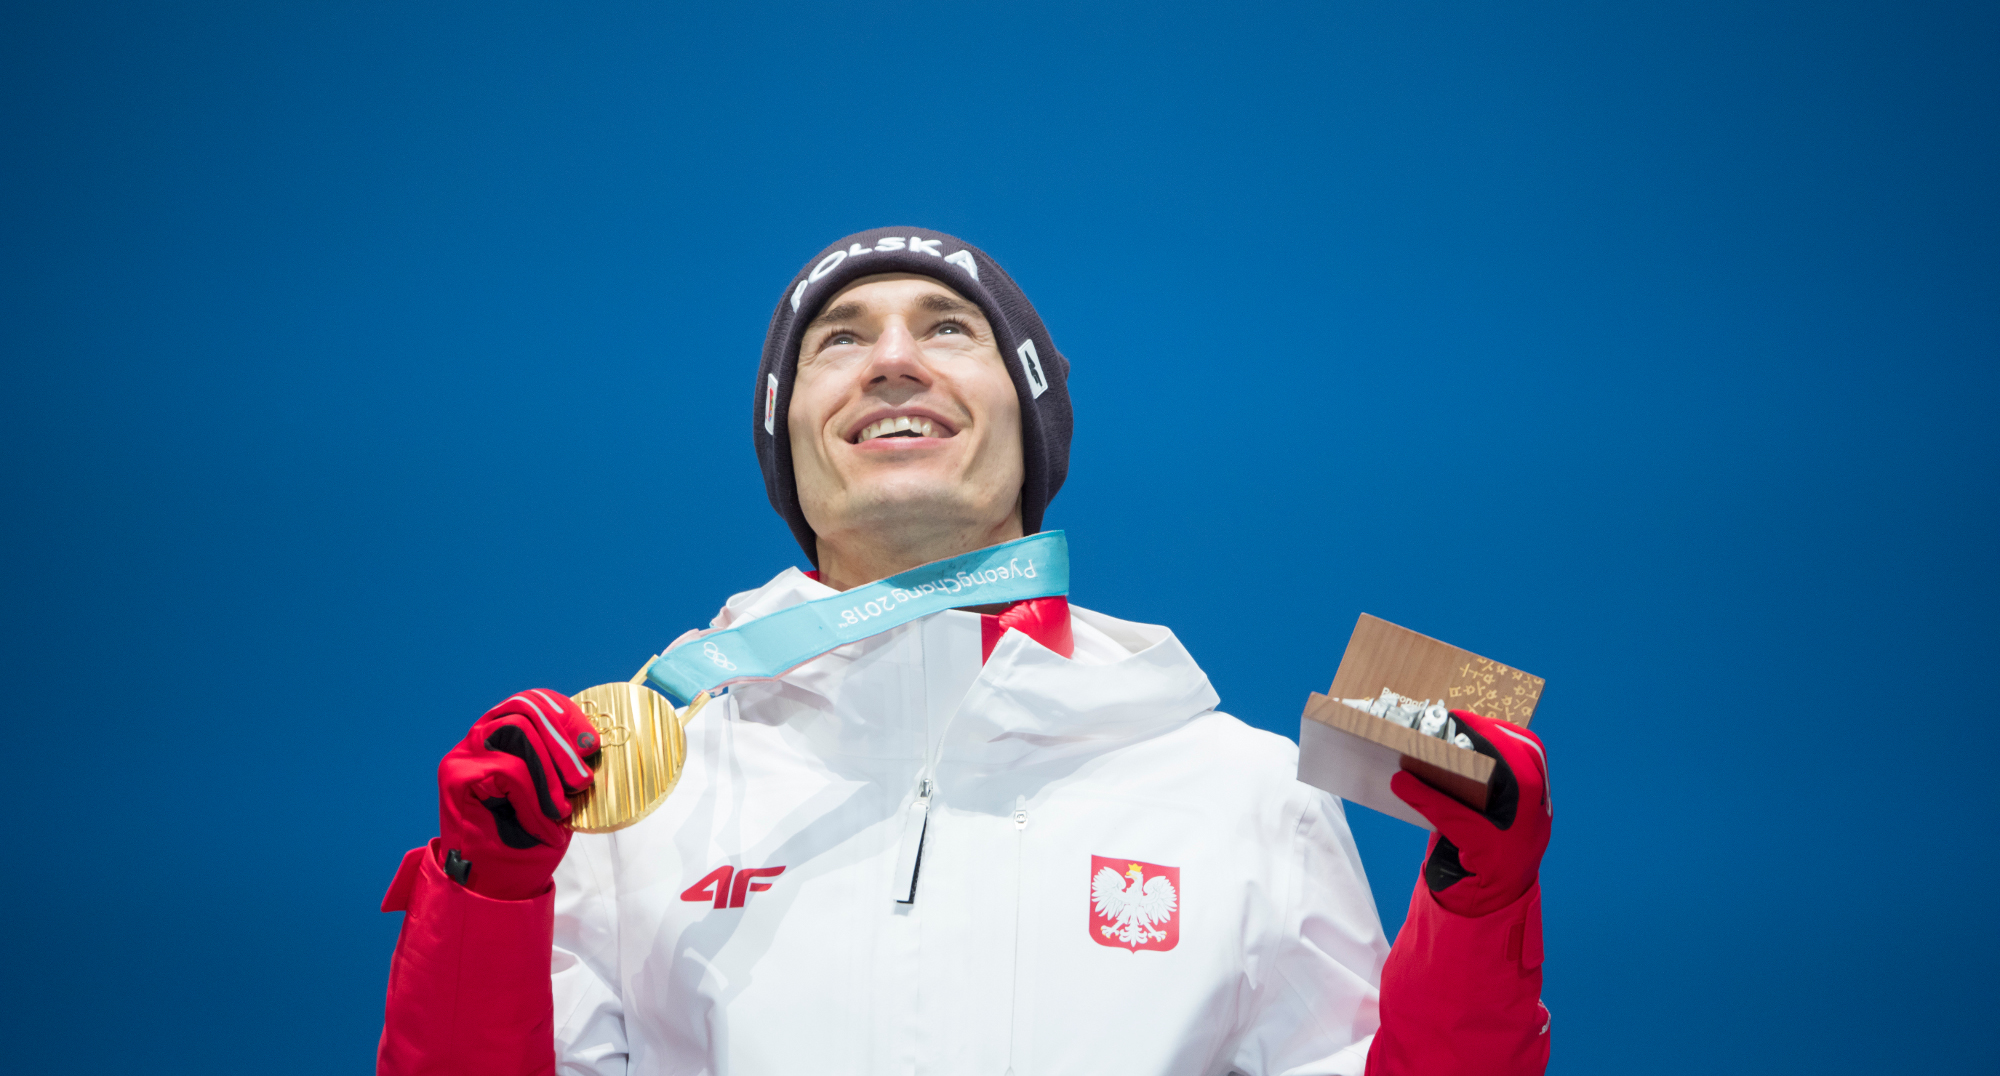 Kamil Stoch wins third Four Hills Tournament